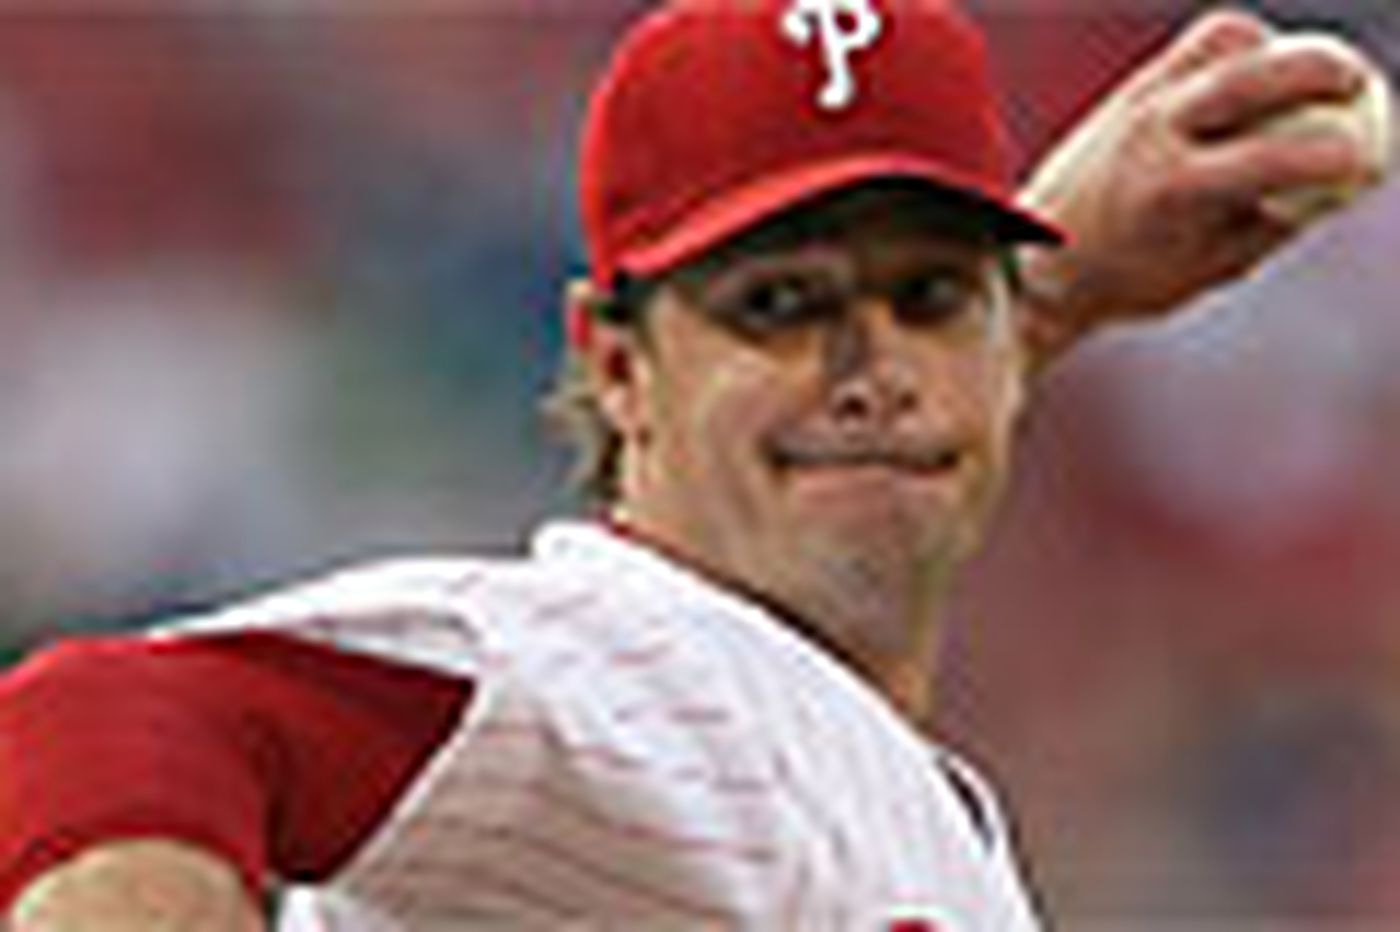 Sam Donnellon: For Phillies pitcher Moyer, season of giving never ends